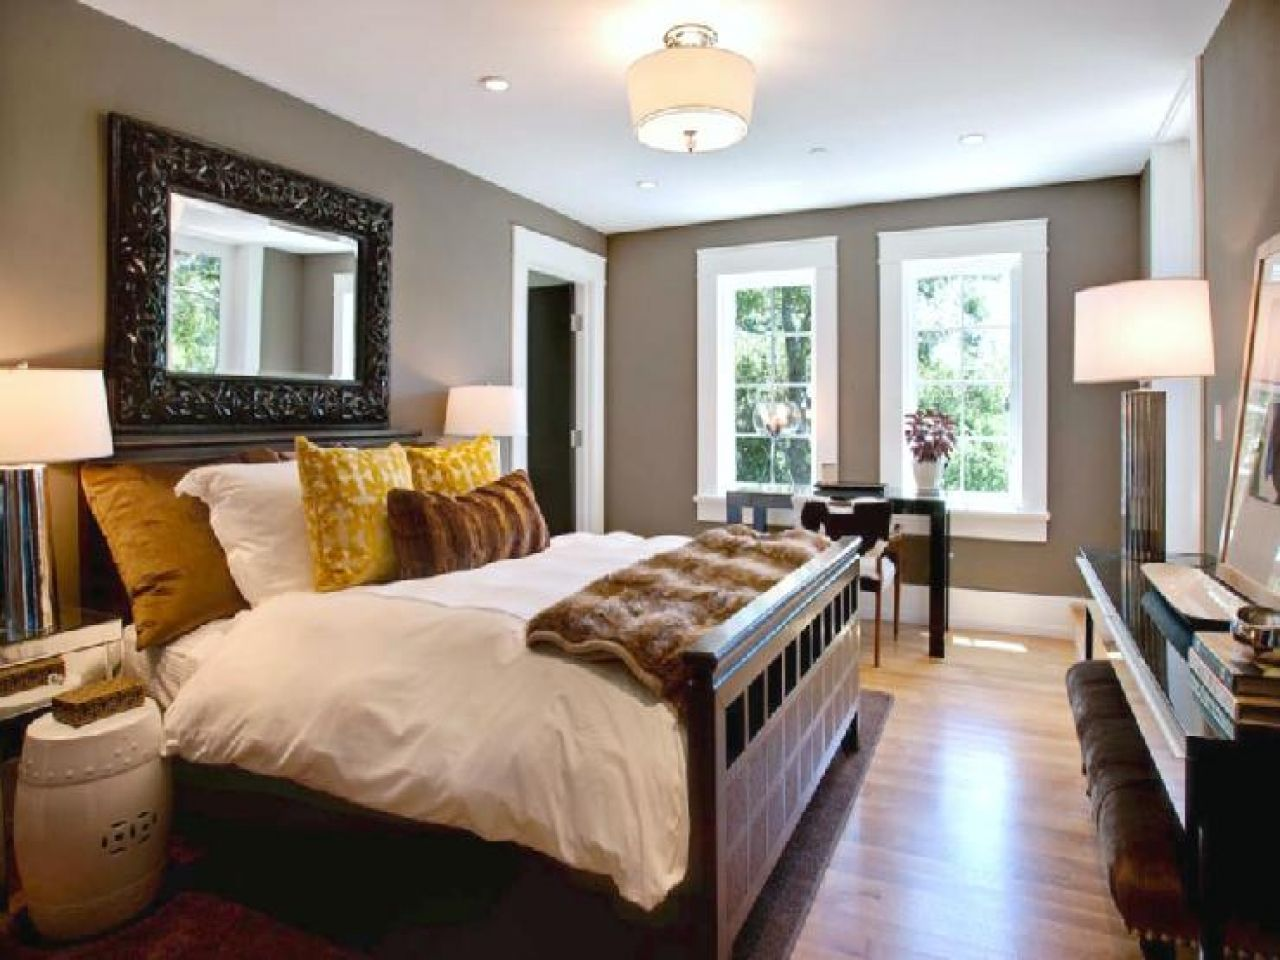 Master bedroom colour ideas  bedroom pinterest master color ideas lovely bedrooms dona get better